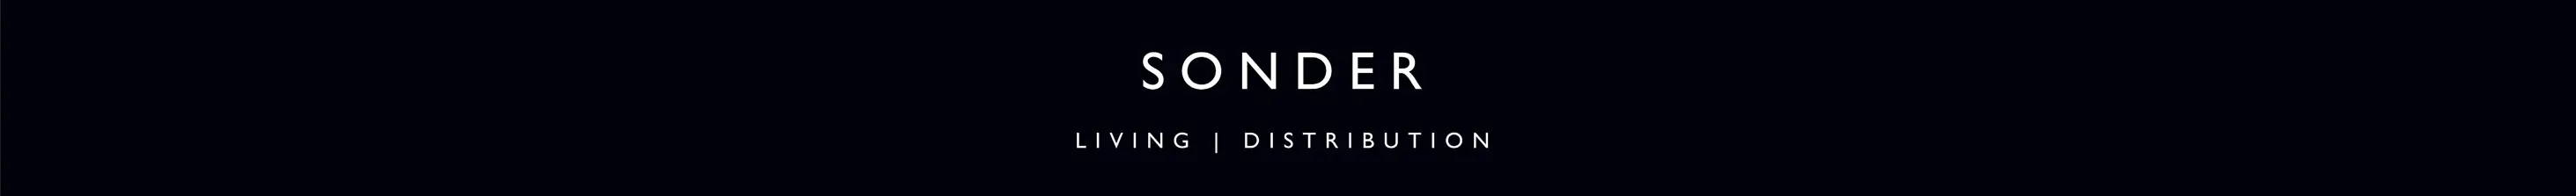 Sonder Living & Distribution Logo